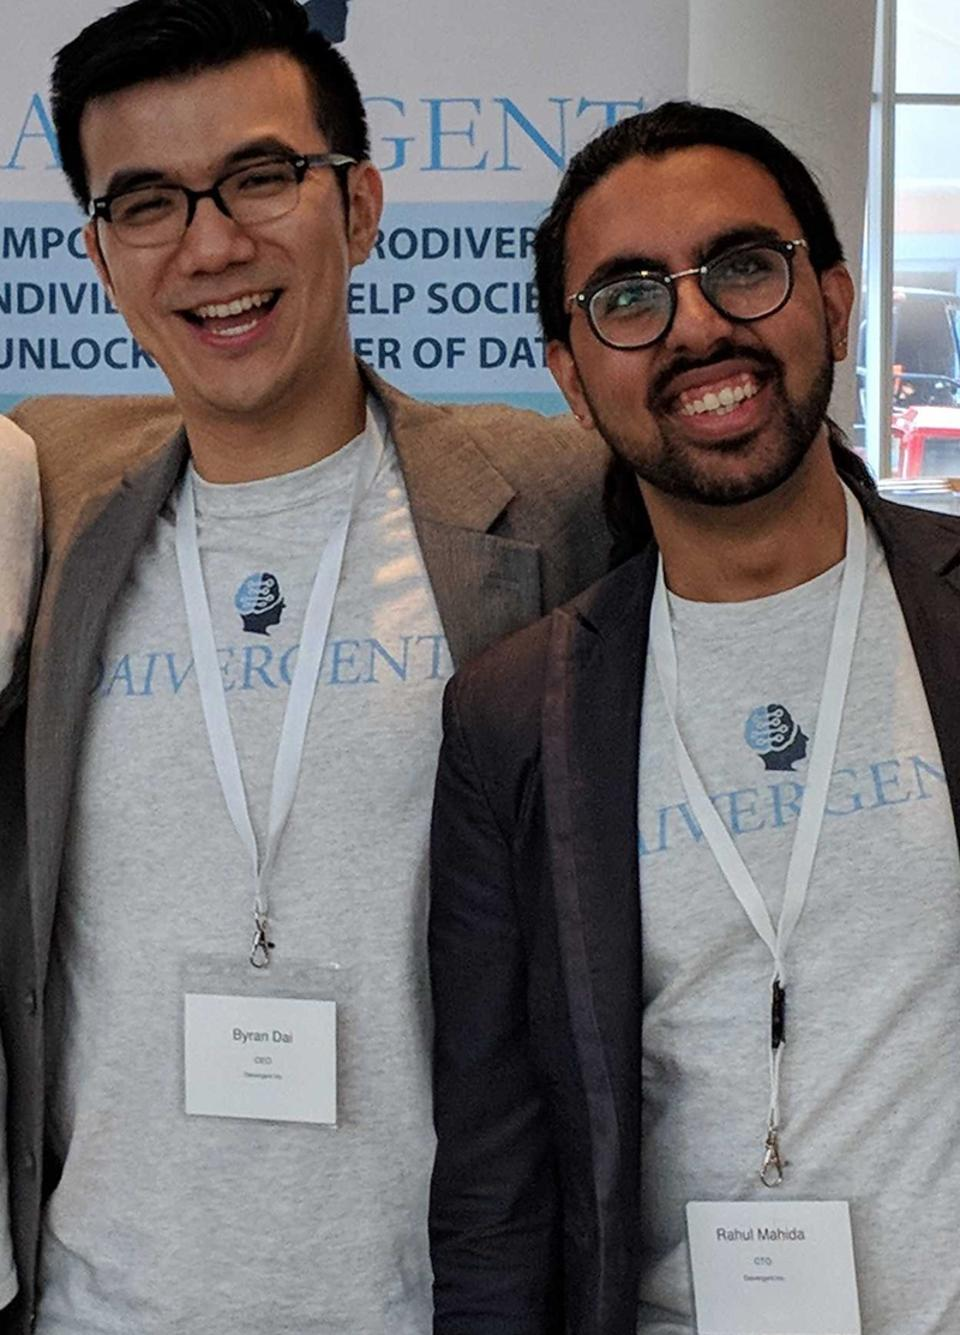 Co-founders of cloud-based startup, Daivergent. L to R: Byran Dai, CEO, Rahul Mahida, CTO